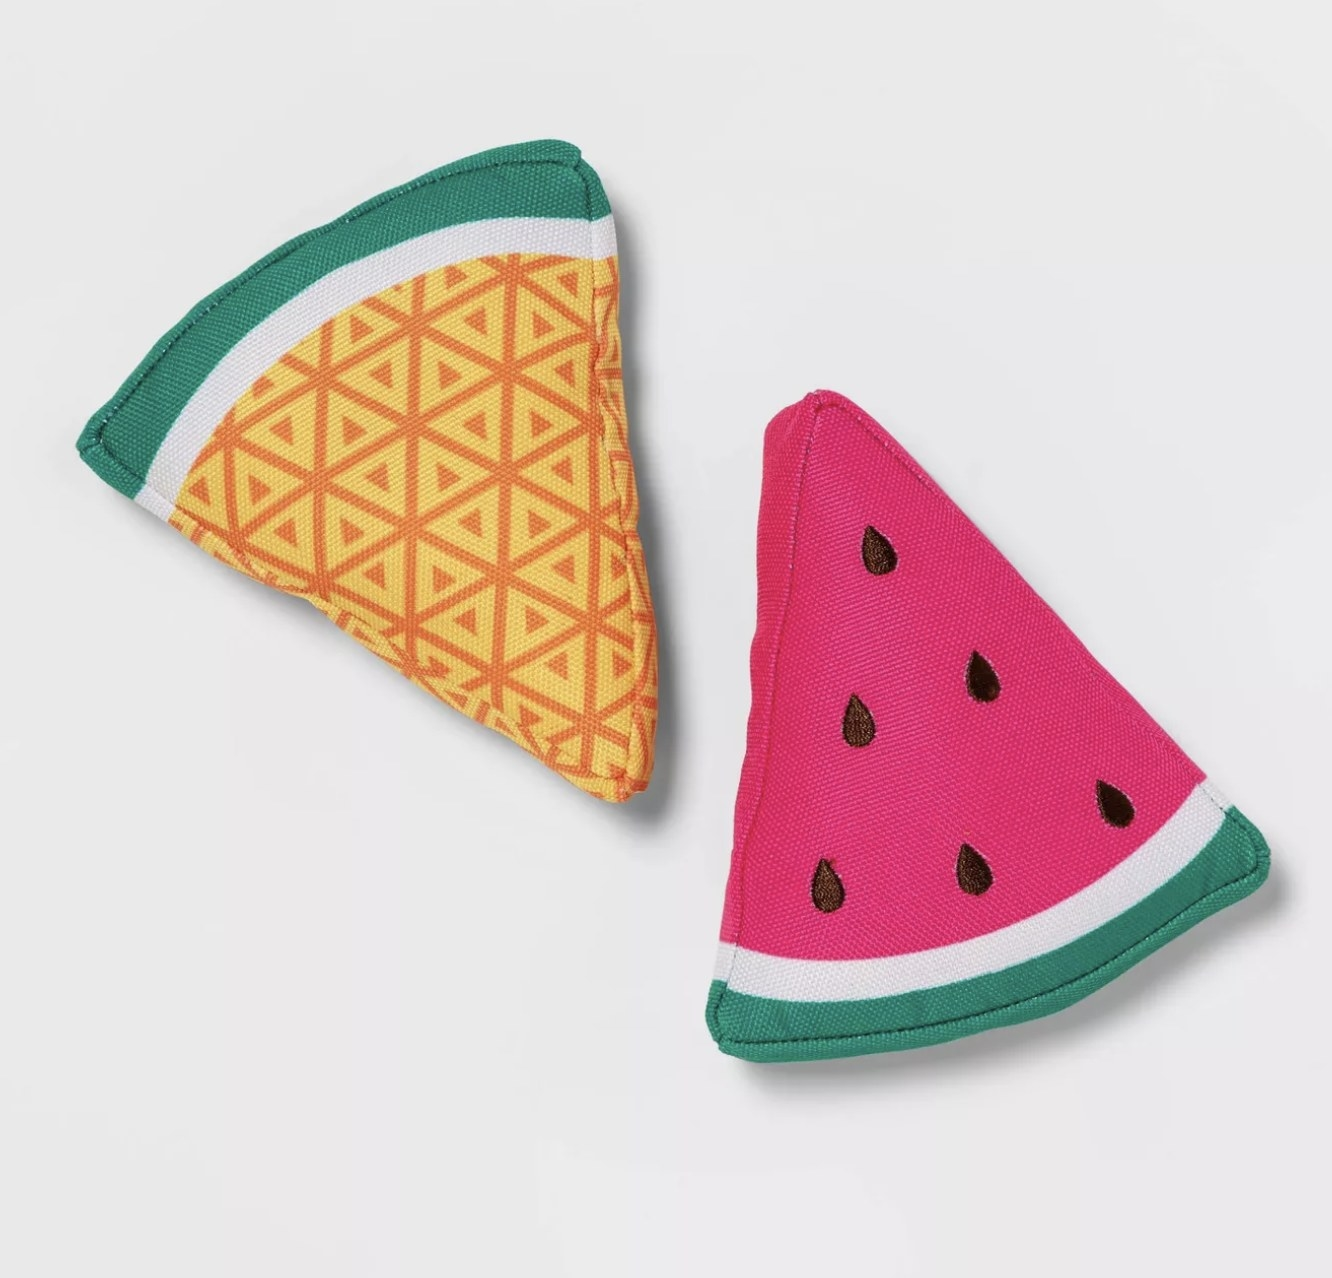 A pineapple and watermelon slice dog toy set